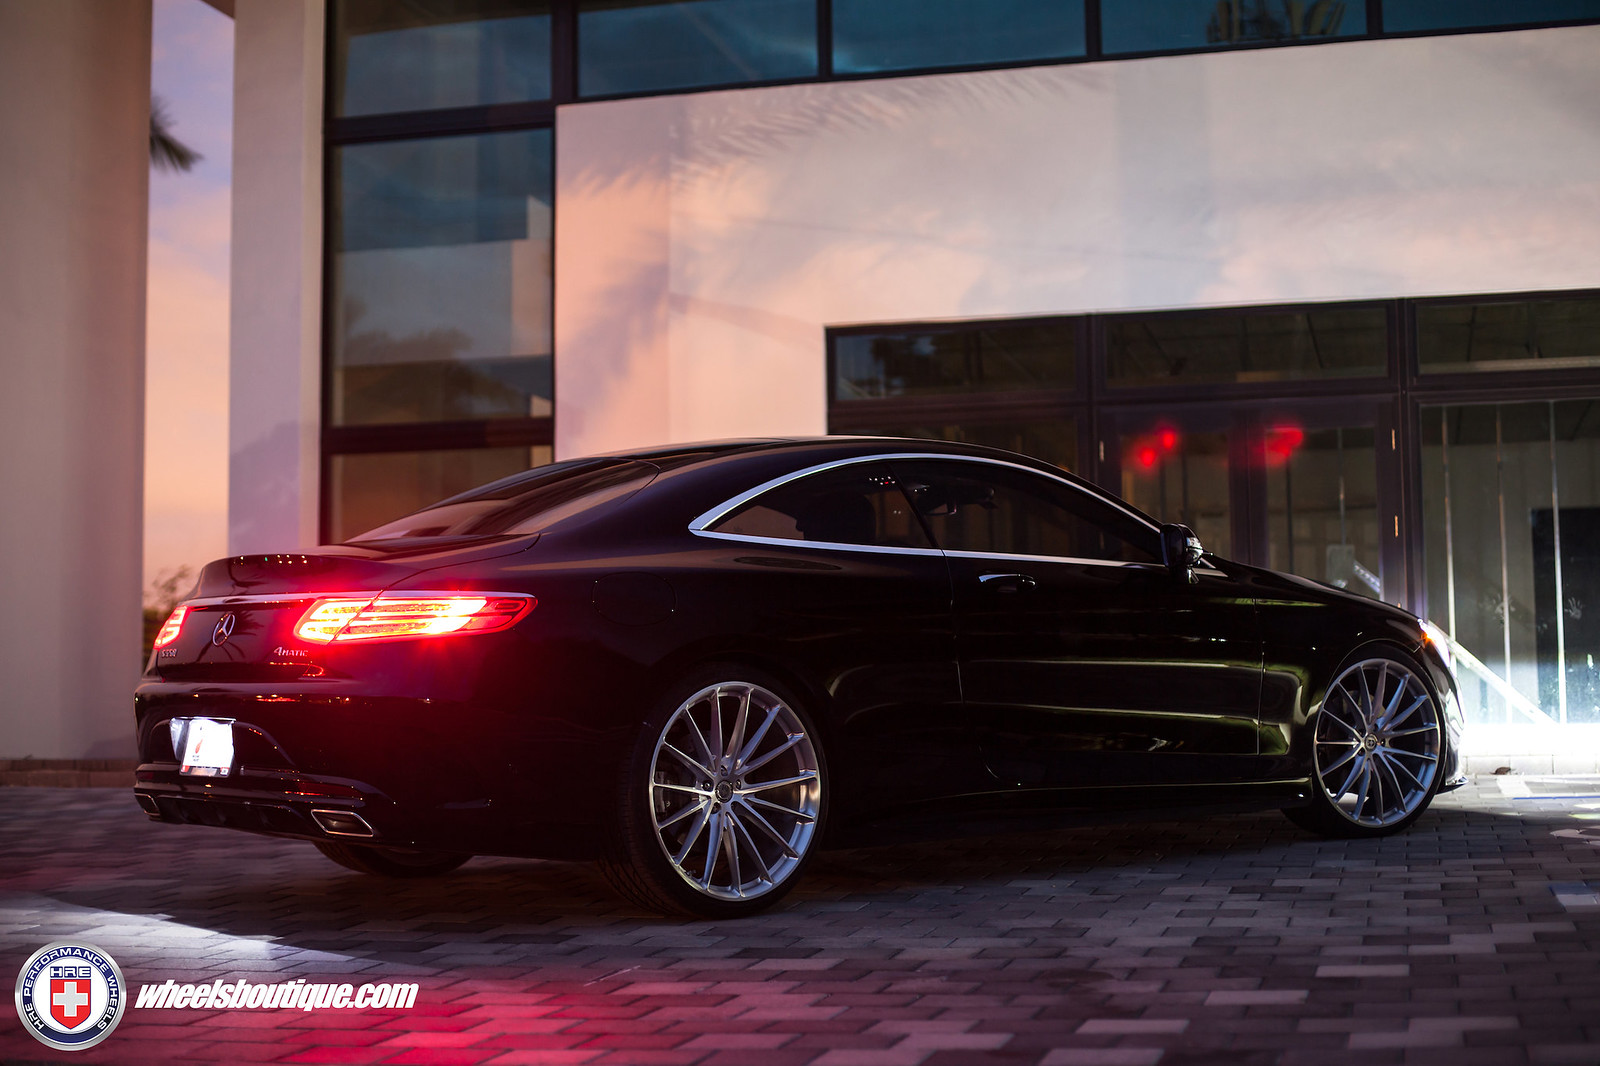 2017 S550 Coupe >> Mercedes Benz S550 Coupe on HRE P103's by Wheels Boutique - MBWorld.org Forums